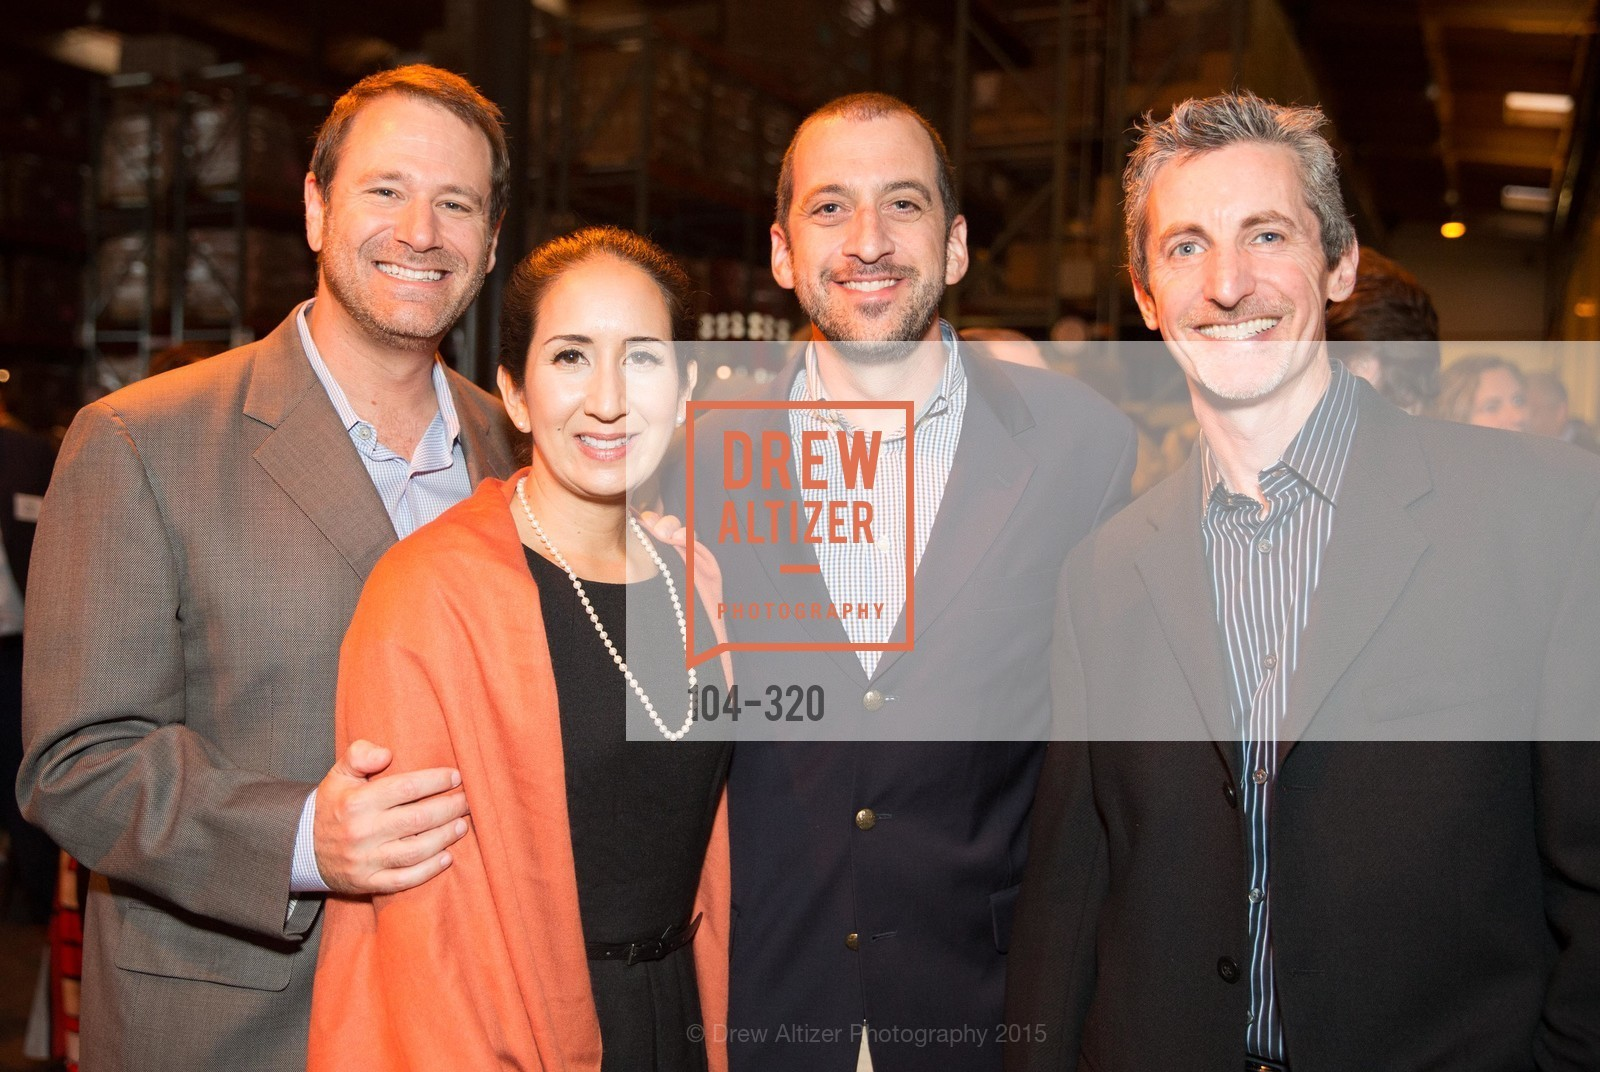 David Leeb, Linda Leeb, David Hershenson, Brent Daniel, SF - Marin Food Bank Presents ONE BIG TABLE, SF- Marin Food Bank. 900 Pennsylvania Ave, September 26th, 2015,Drew Altizer, Drew Altizer Photography, full-service agency, private events, San Francisco photographer, photographer california